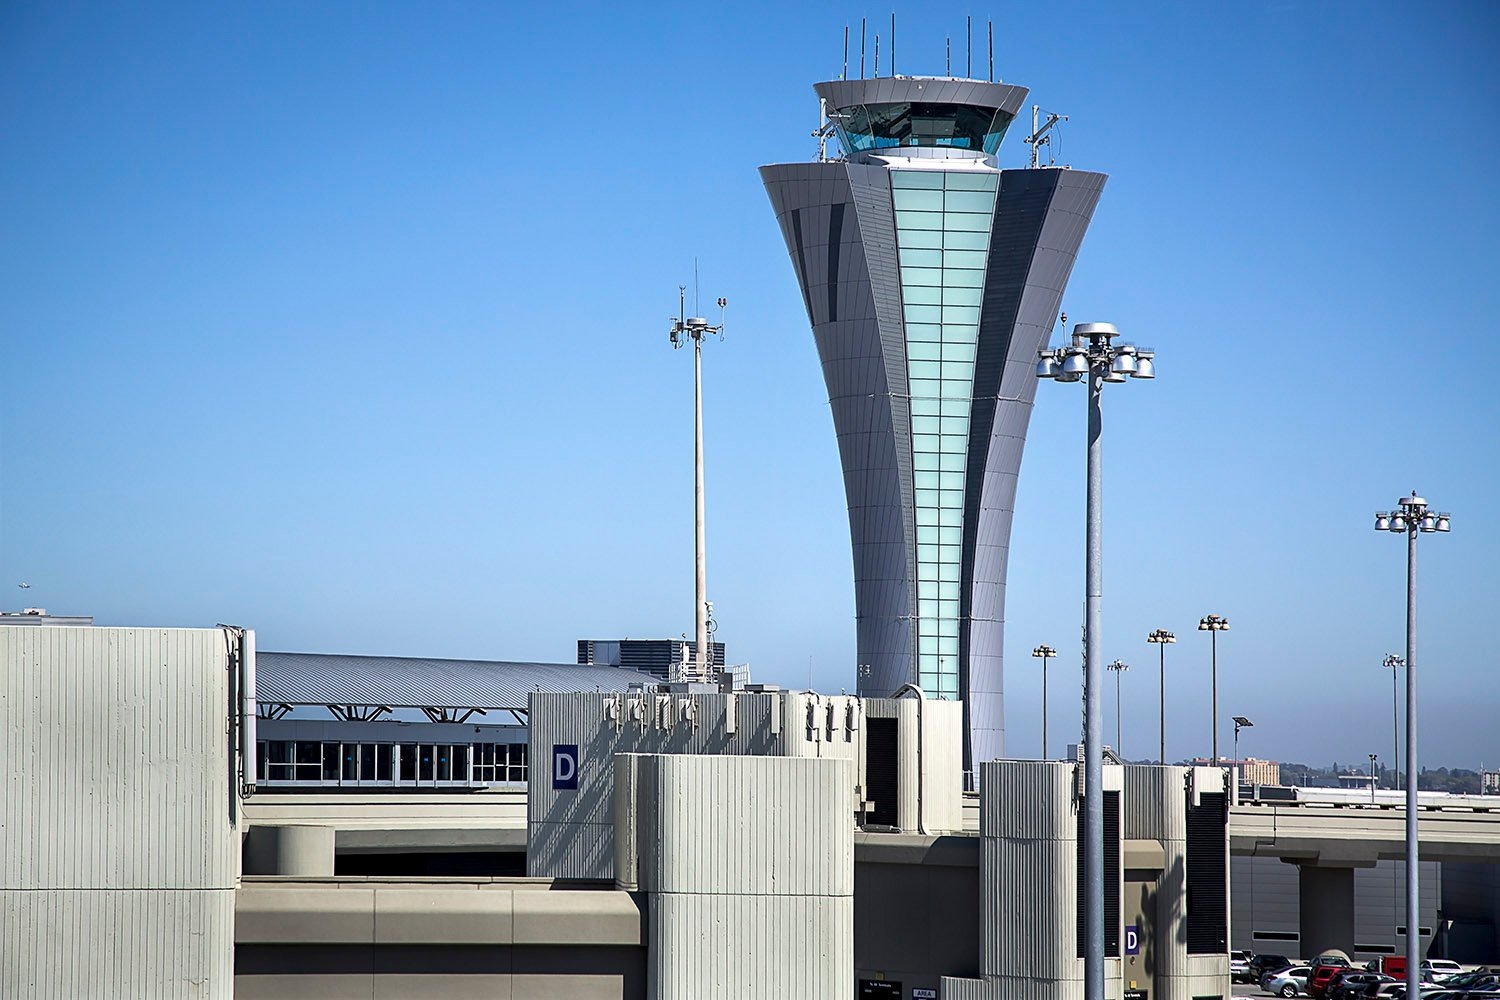 Airside view of the tower from Terminal 2 © John Swain